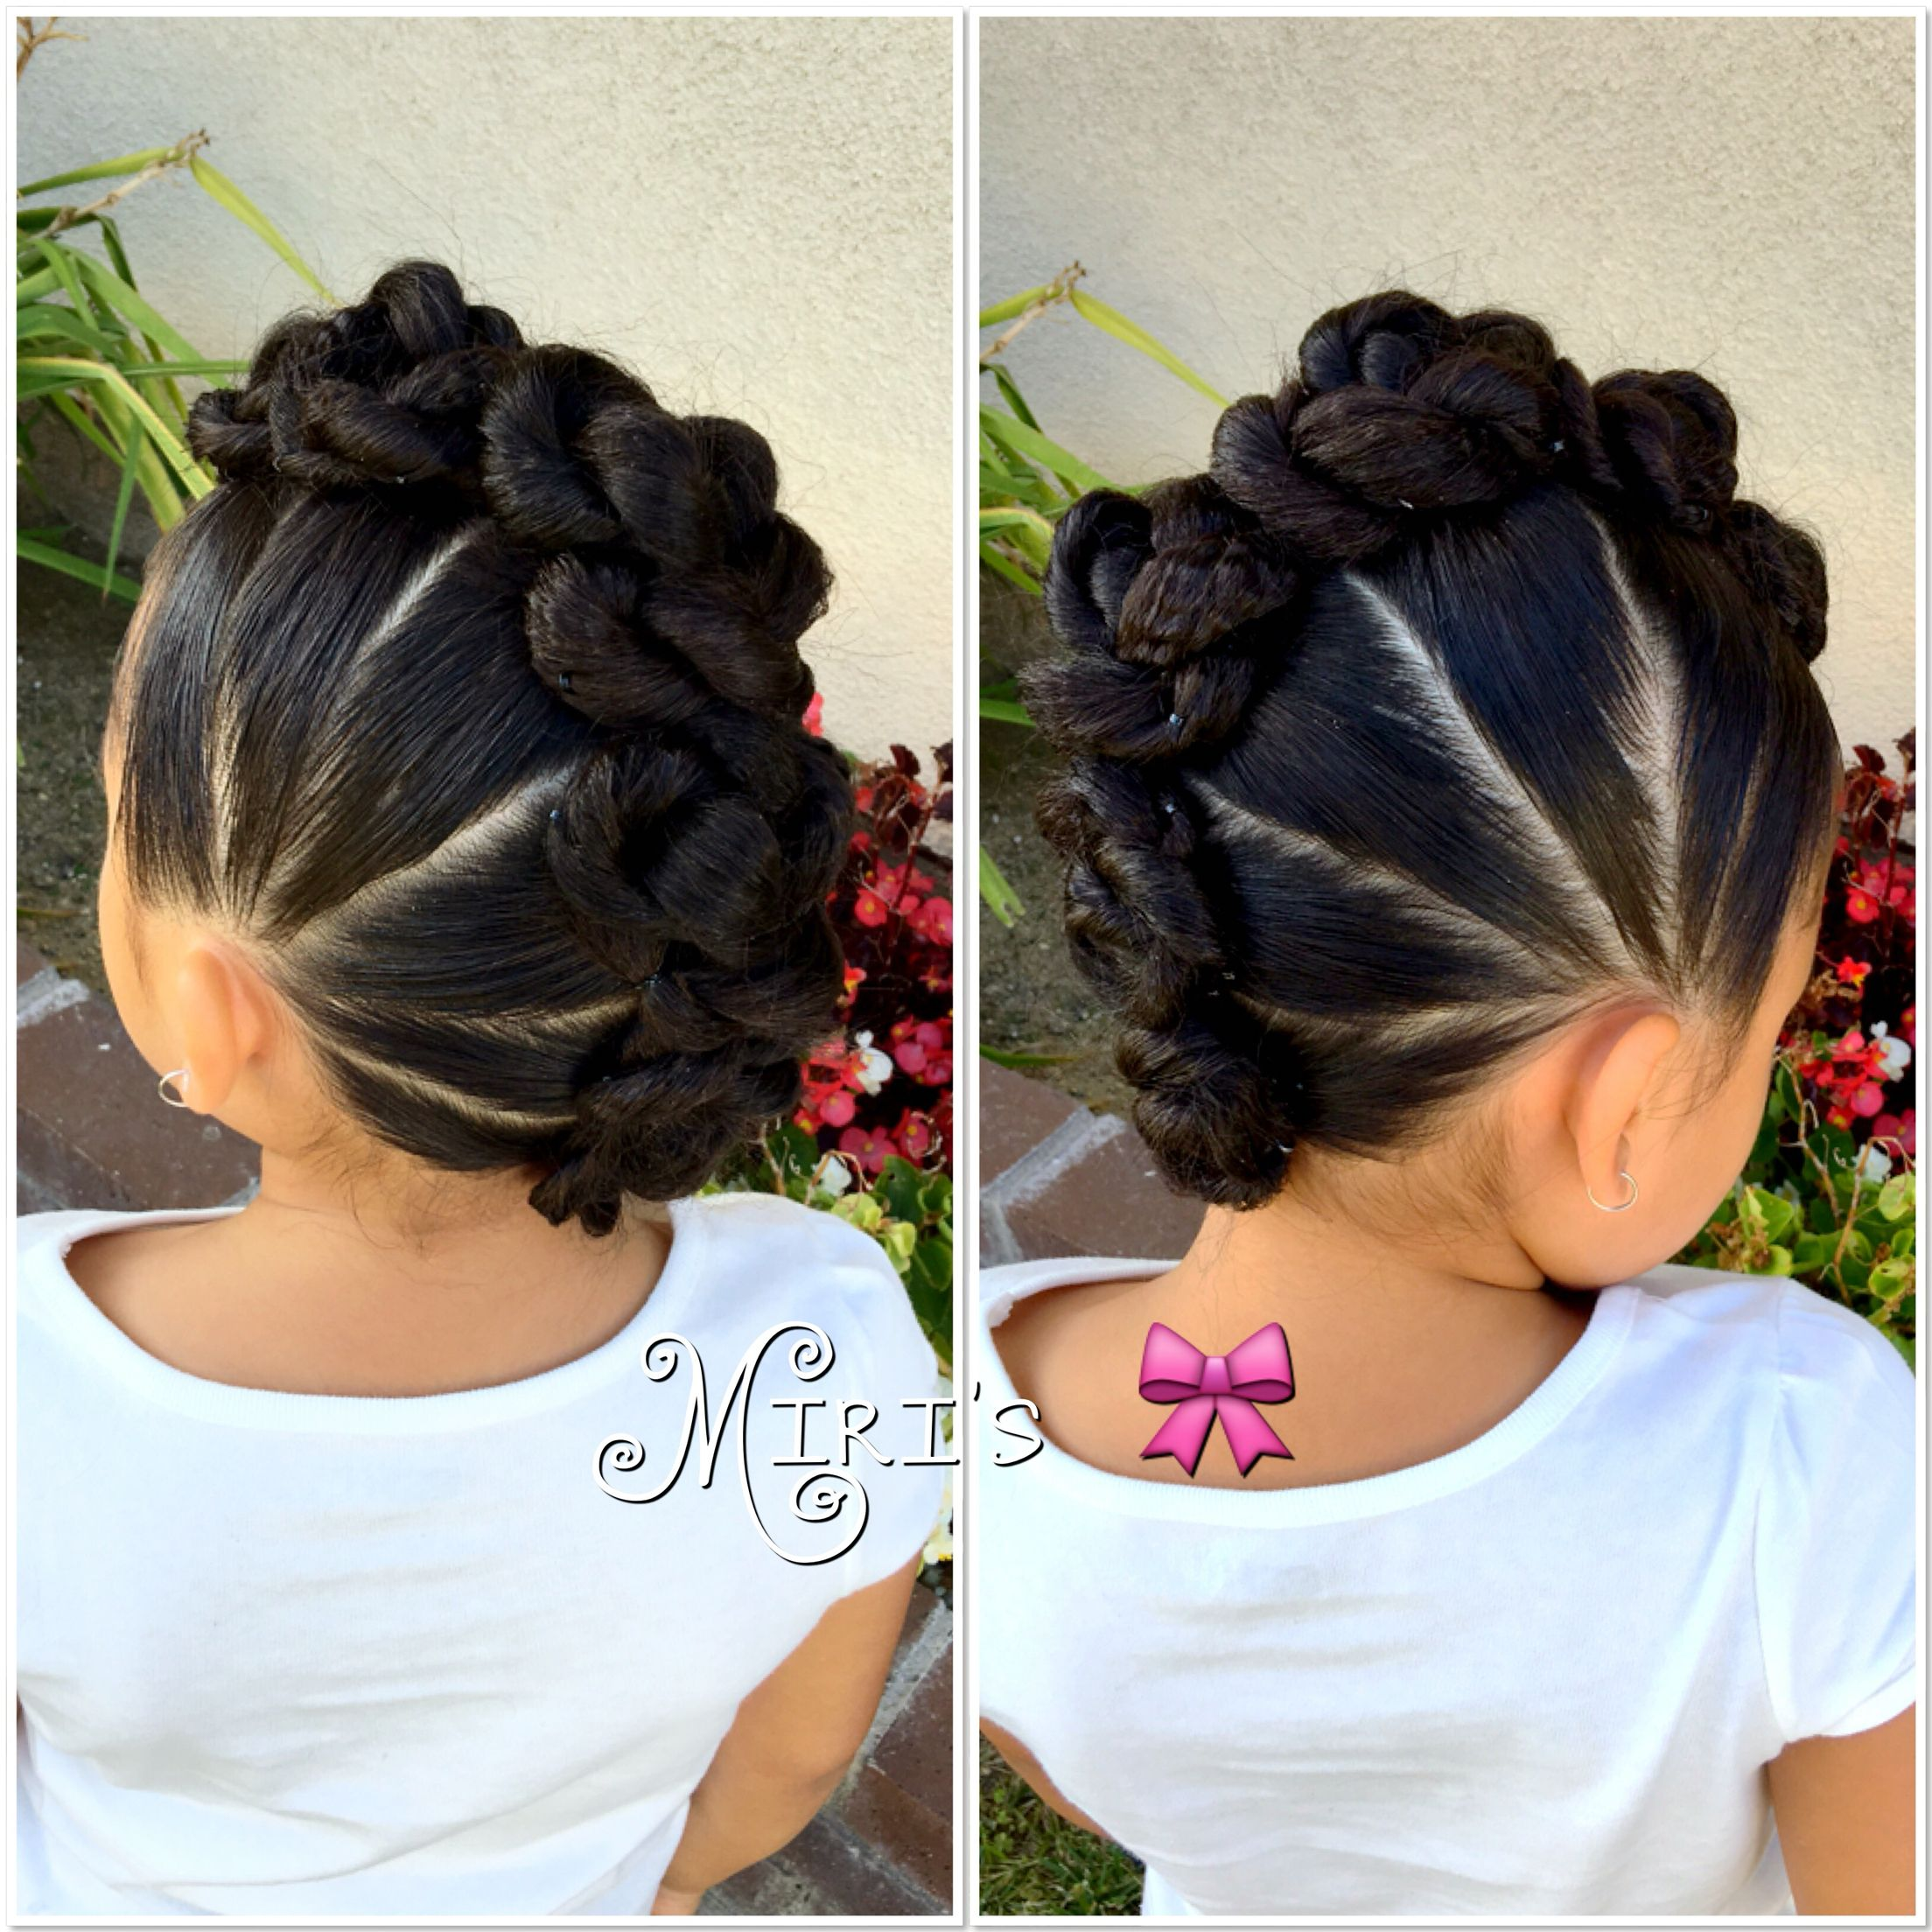 13 Natural Hairstyles For Your Wedding Day Slay: Mohawk With Twists Hair Style For Little Girls